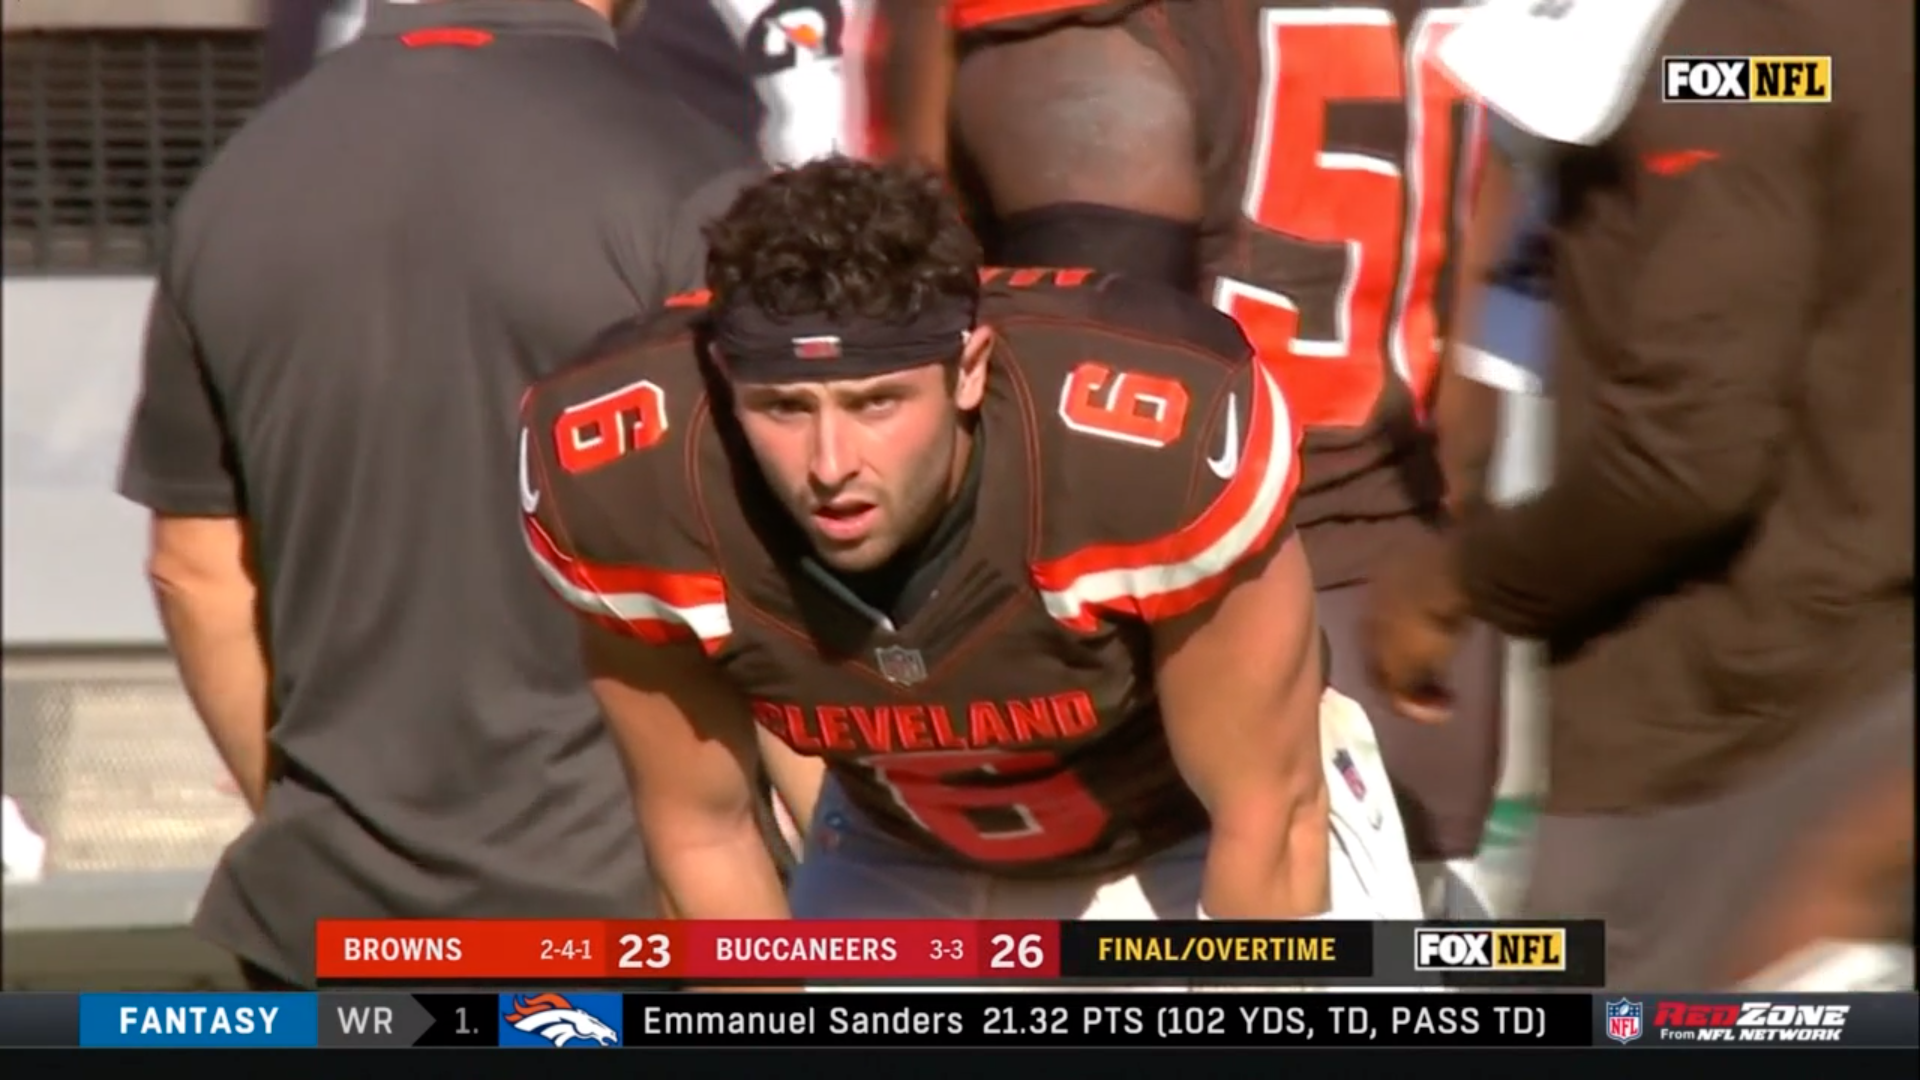 Baker Mayfield's face is the newest meme after the Browns lost in OT